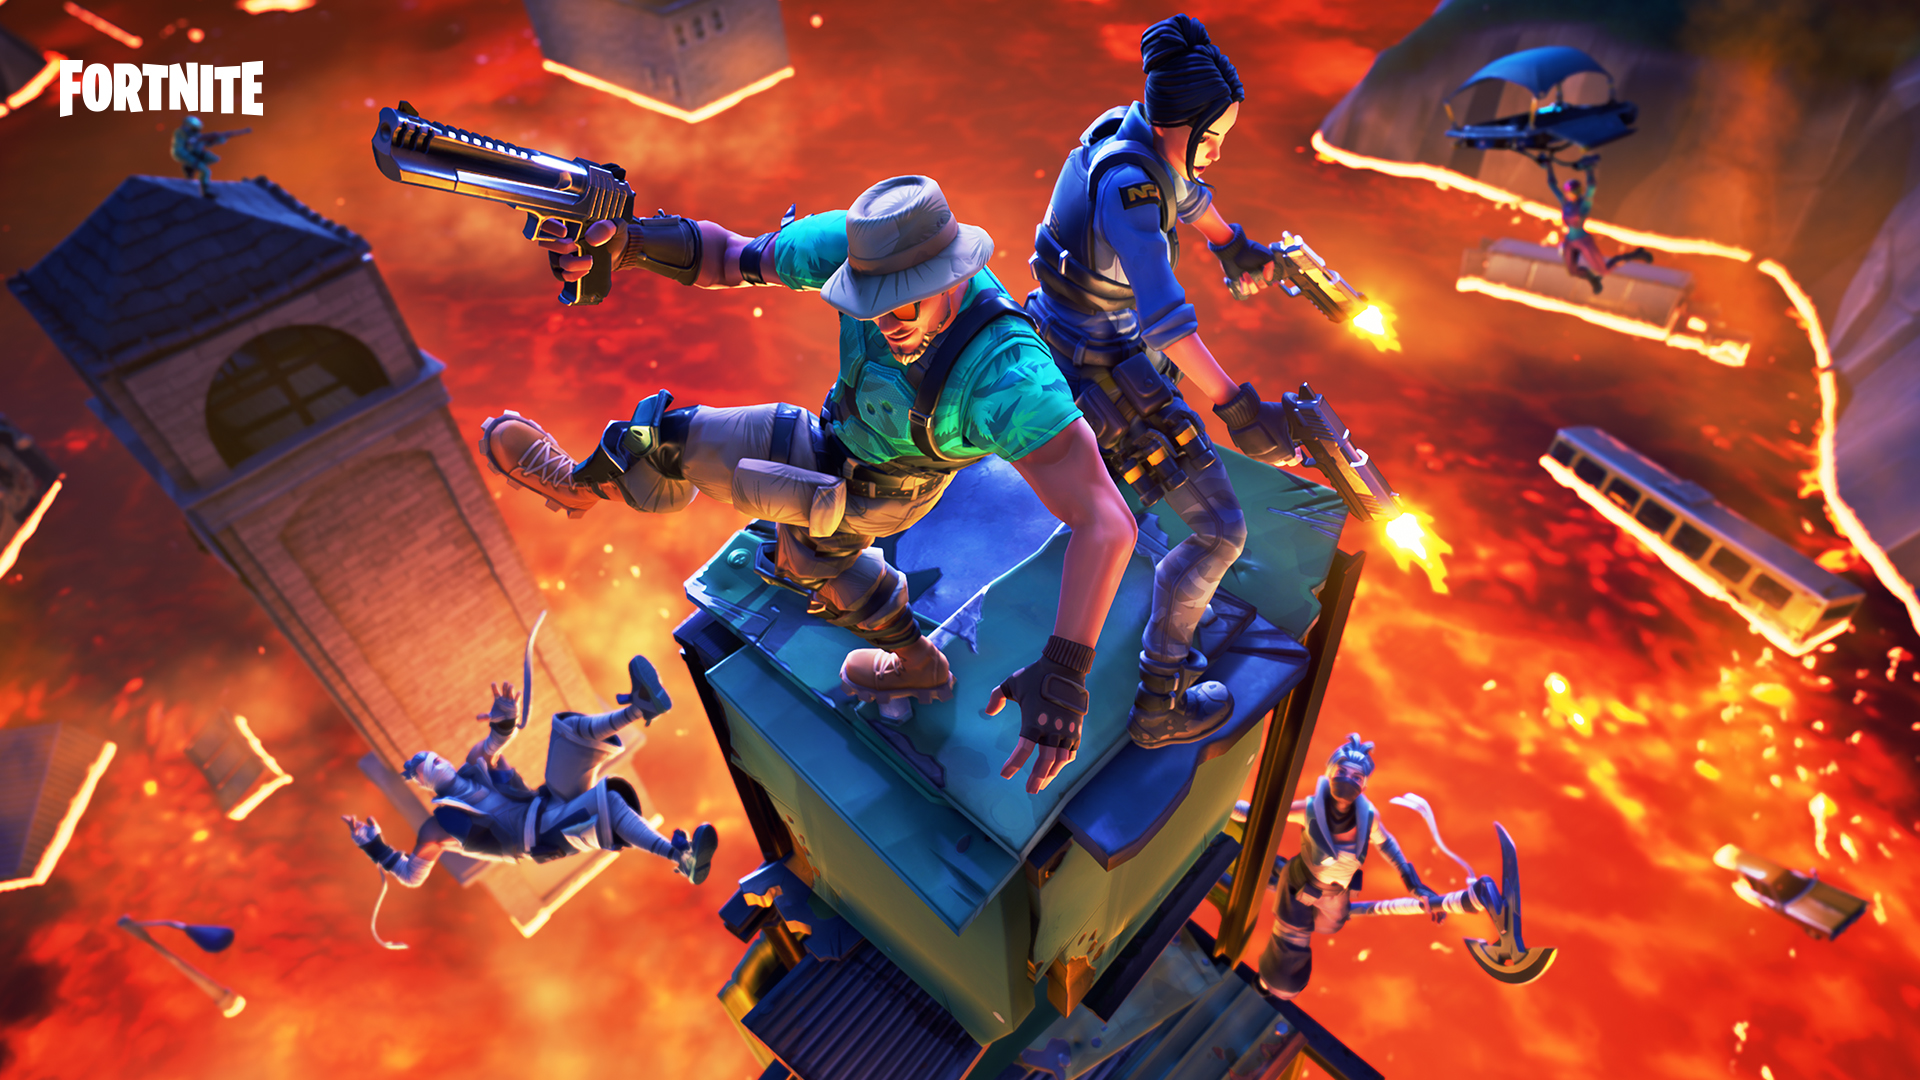 Arena Game Fortnite Update 8 20 Adds Ranked Arena Mode And A Floor Is Lava